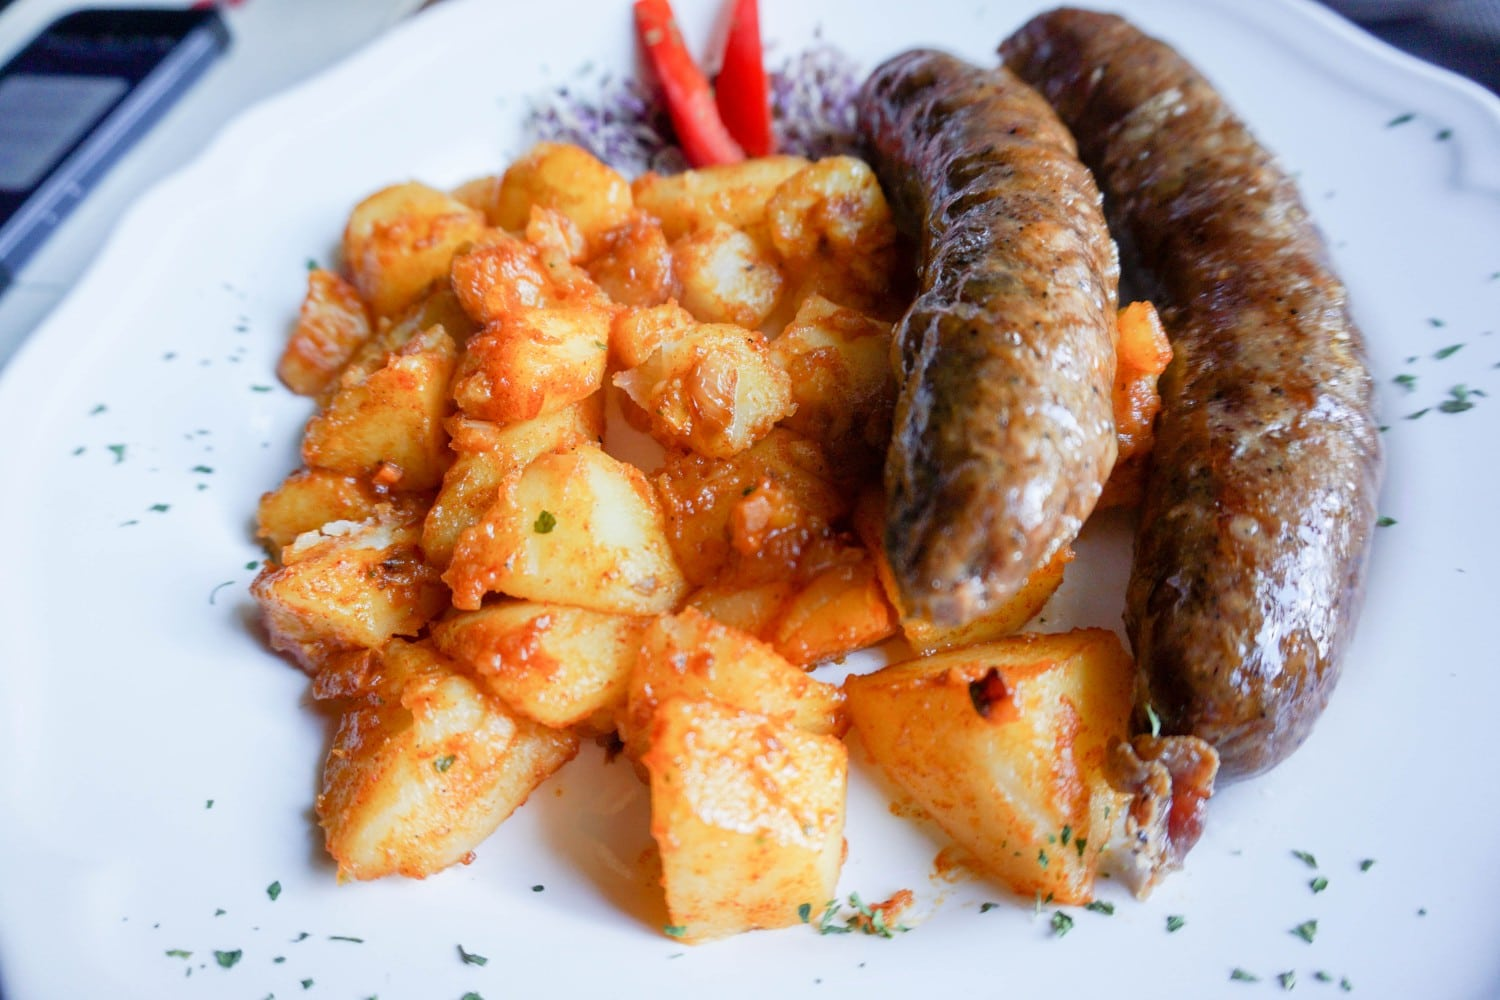 Croatian Sausages at Zagreb's Best Restaurant